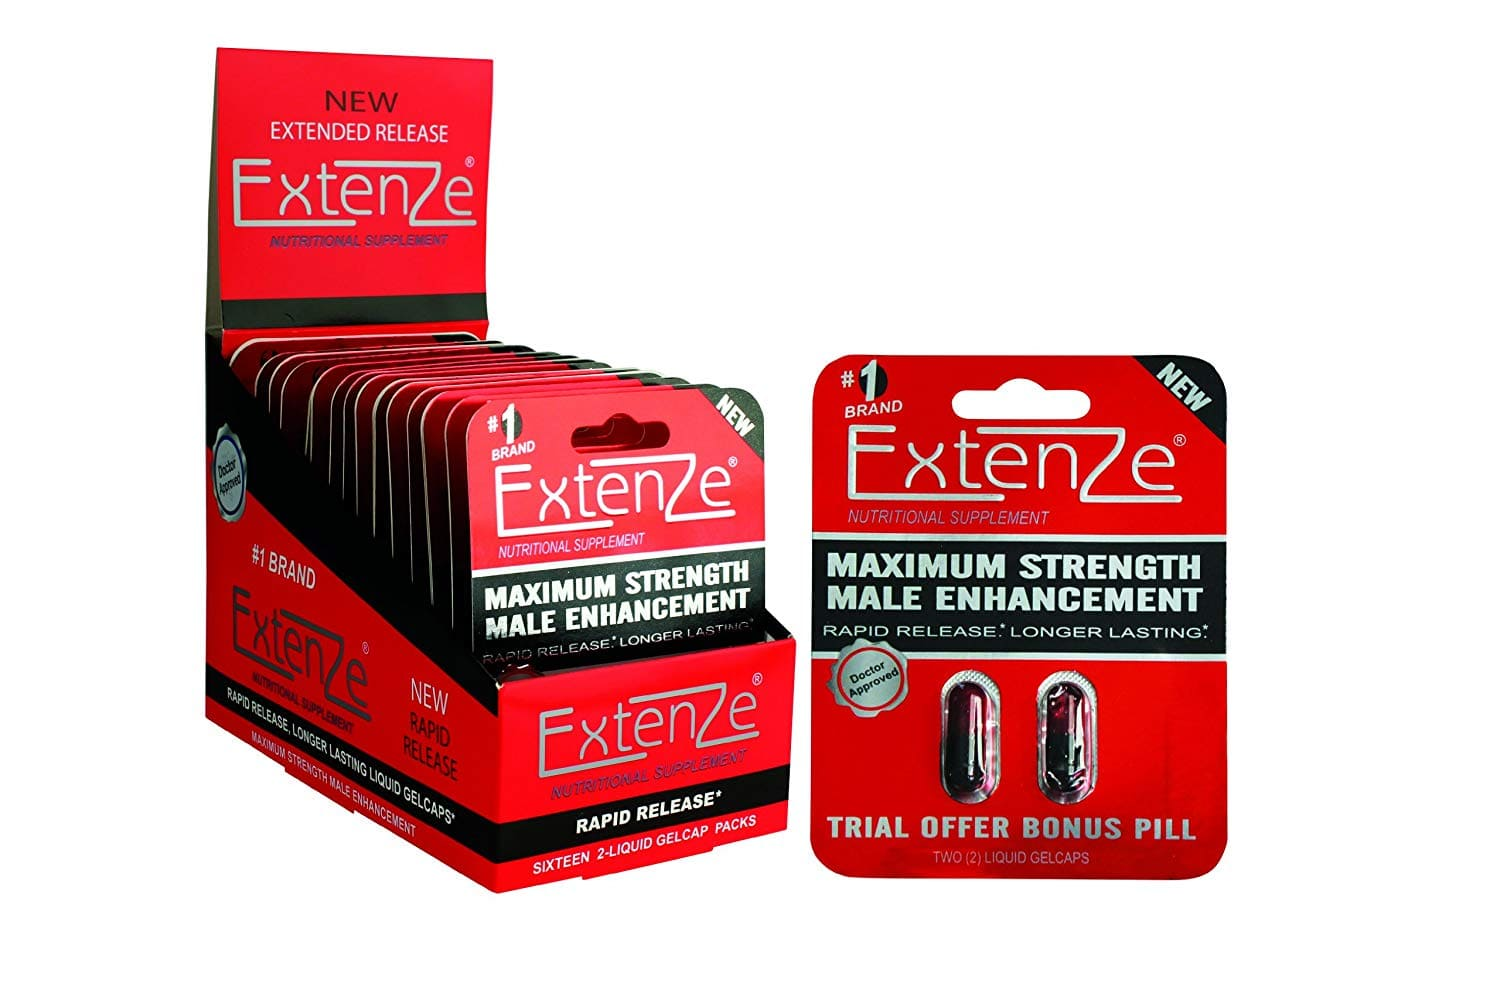 buy Extenze Male Enhancement Pills for sale on amazon